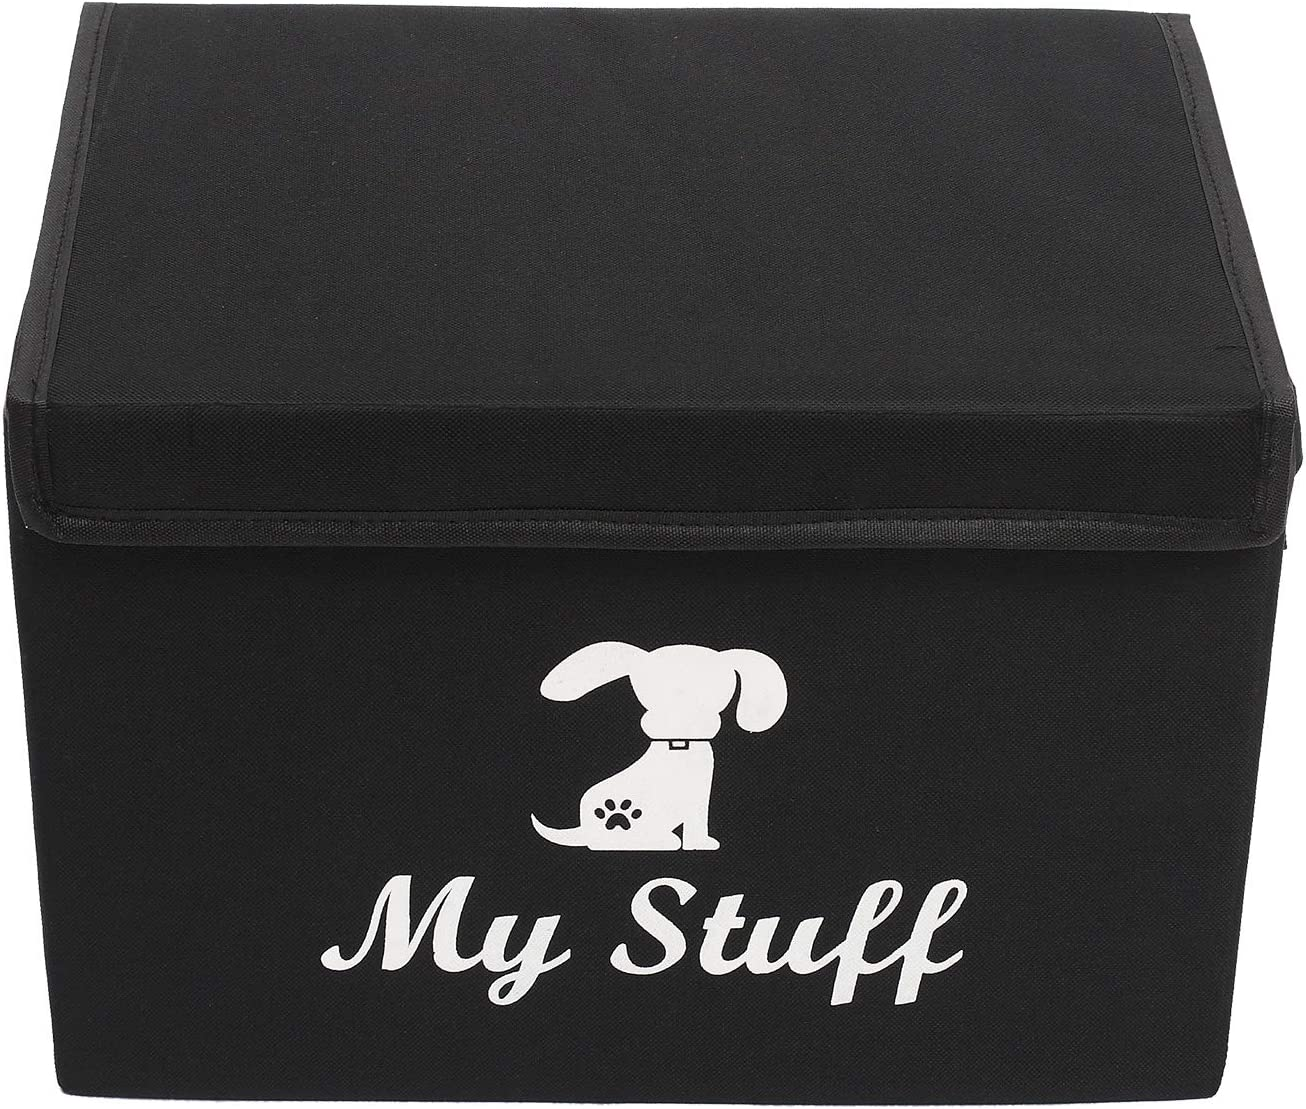 collapsible water resistant dog toy bin for organizing dog toys and stuff Morezi Dog storage bin 15x11x10 inch heavy duty dog toy basket with lid Black